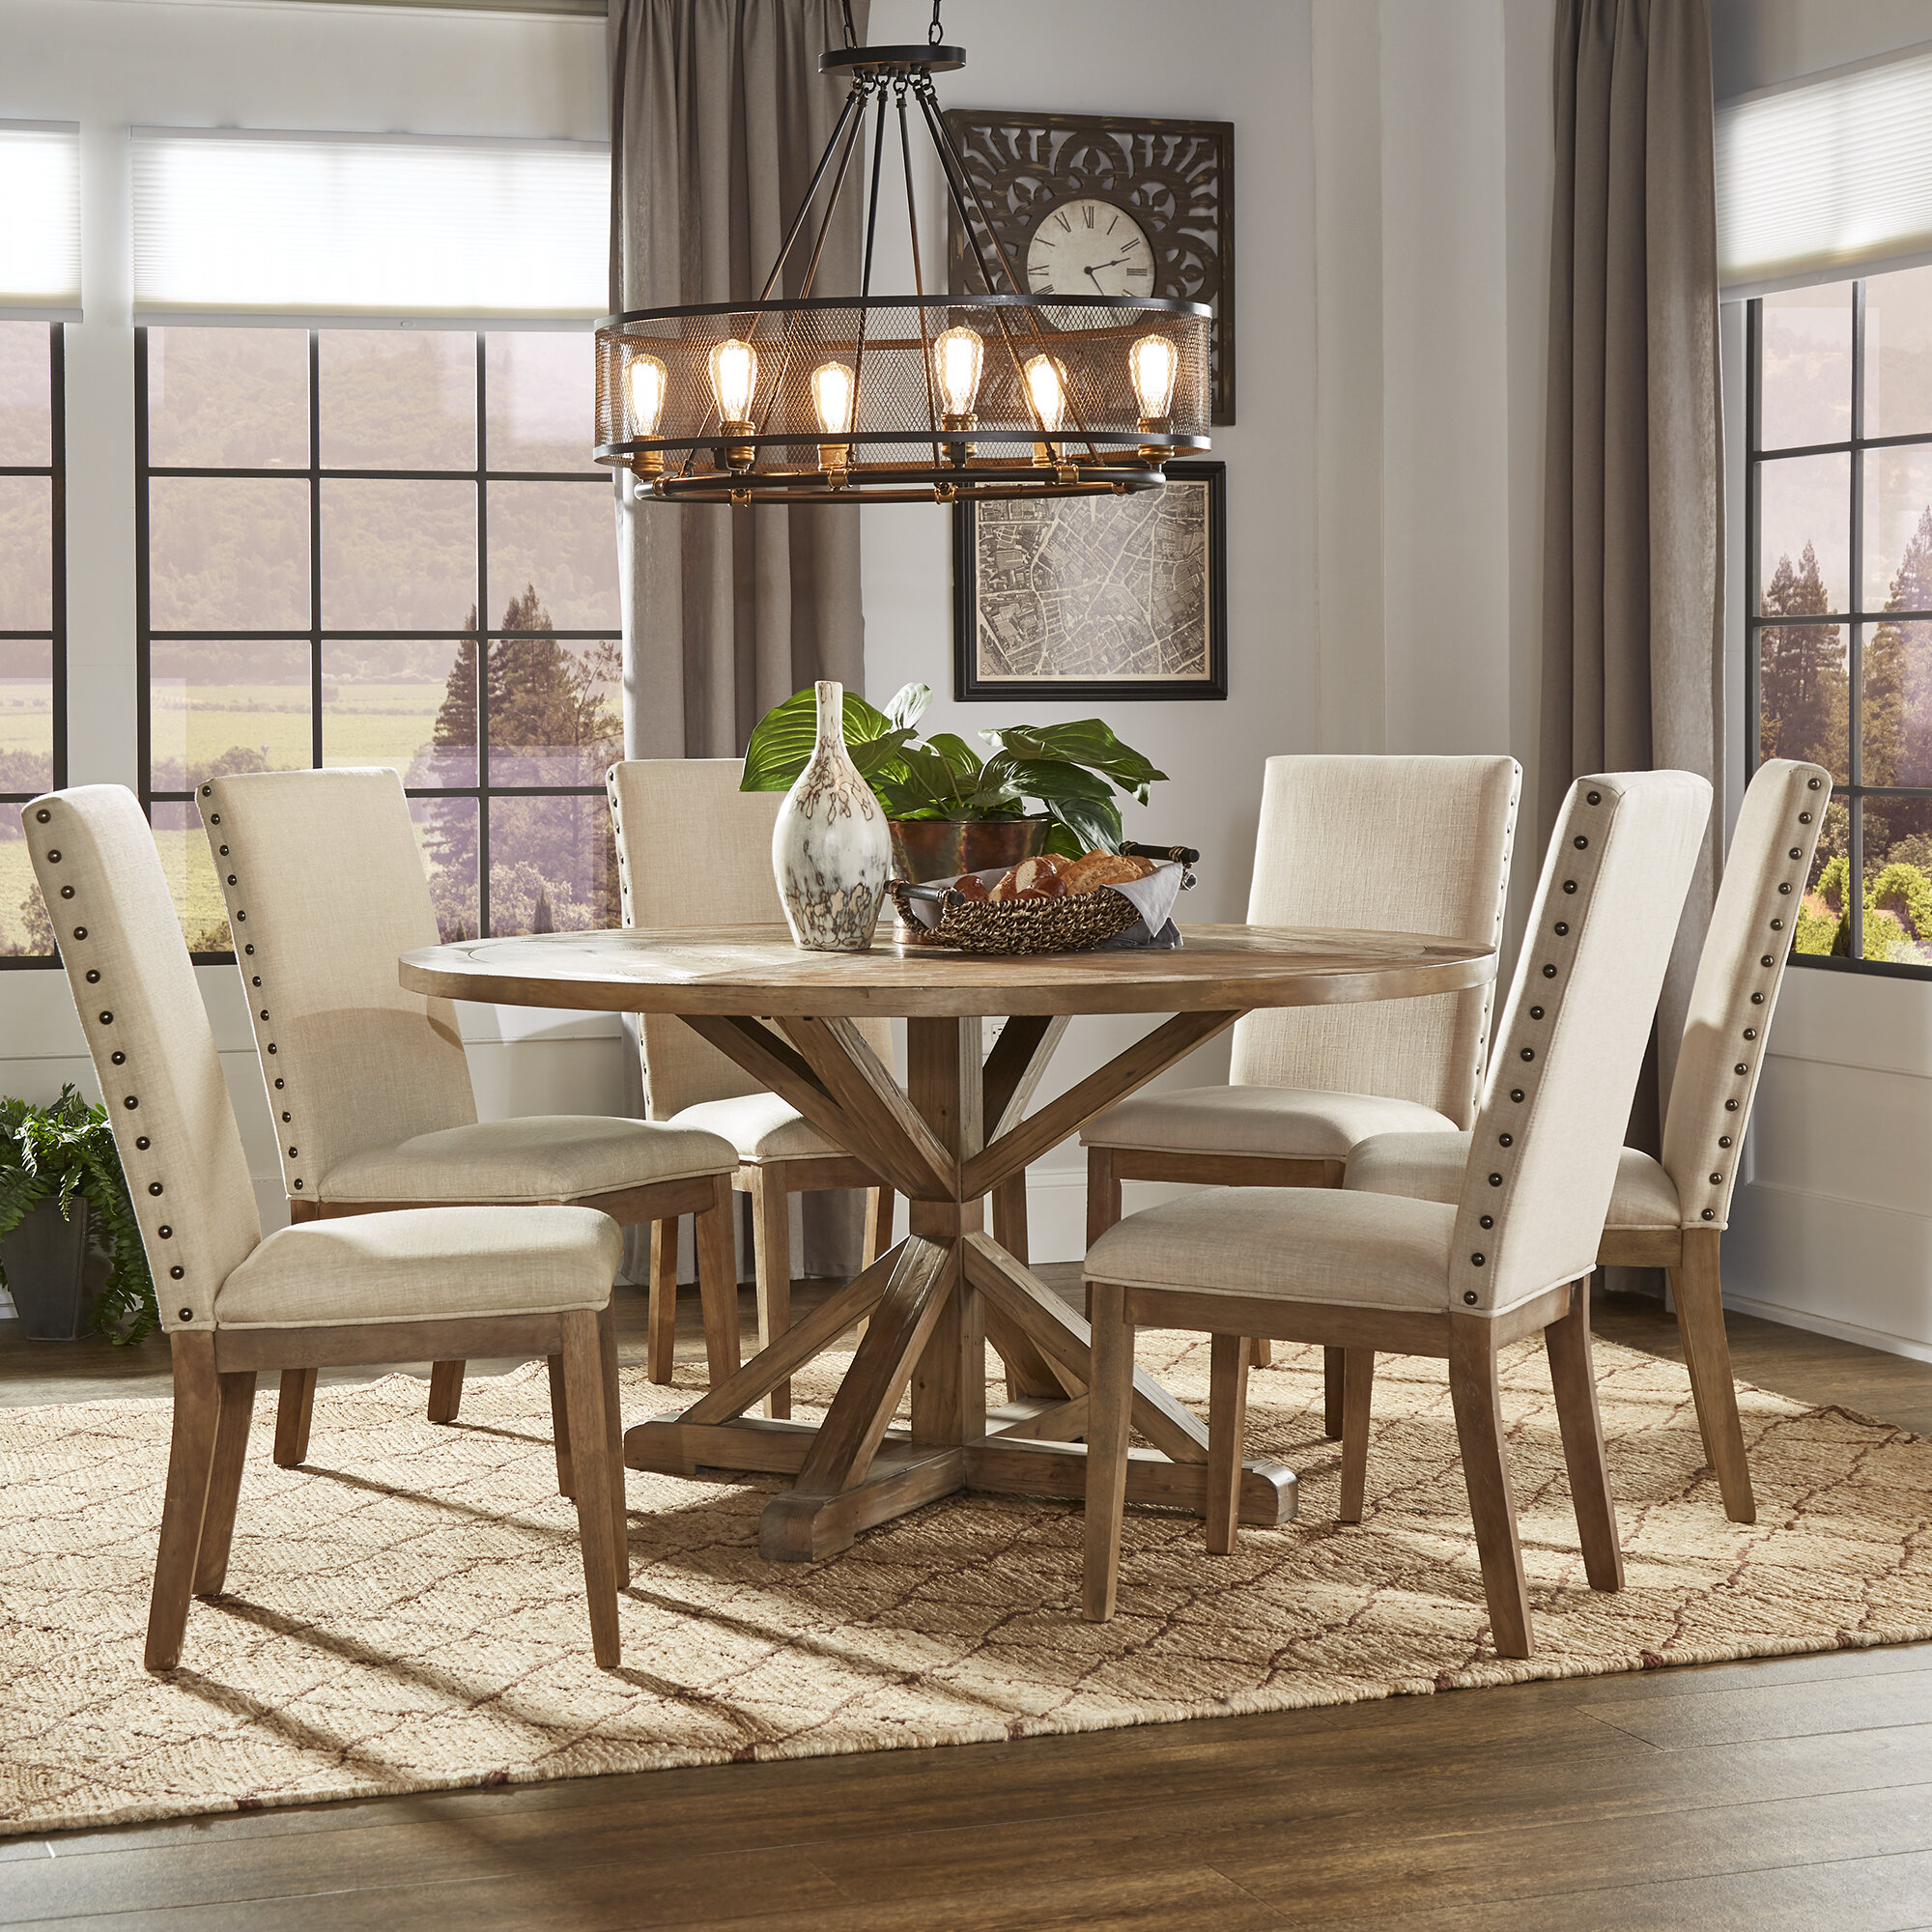 Round Seats 6 Kitchen Dining Room Sets Dining Table Sets You Ll Love In 2021 Wayfair